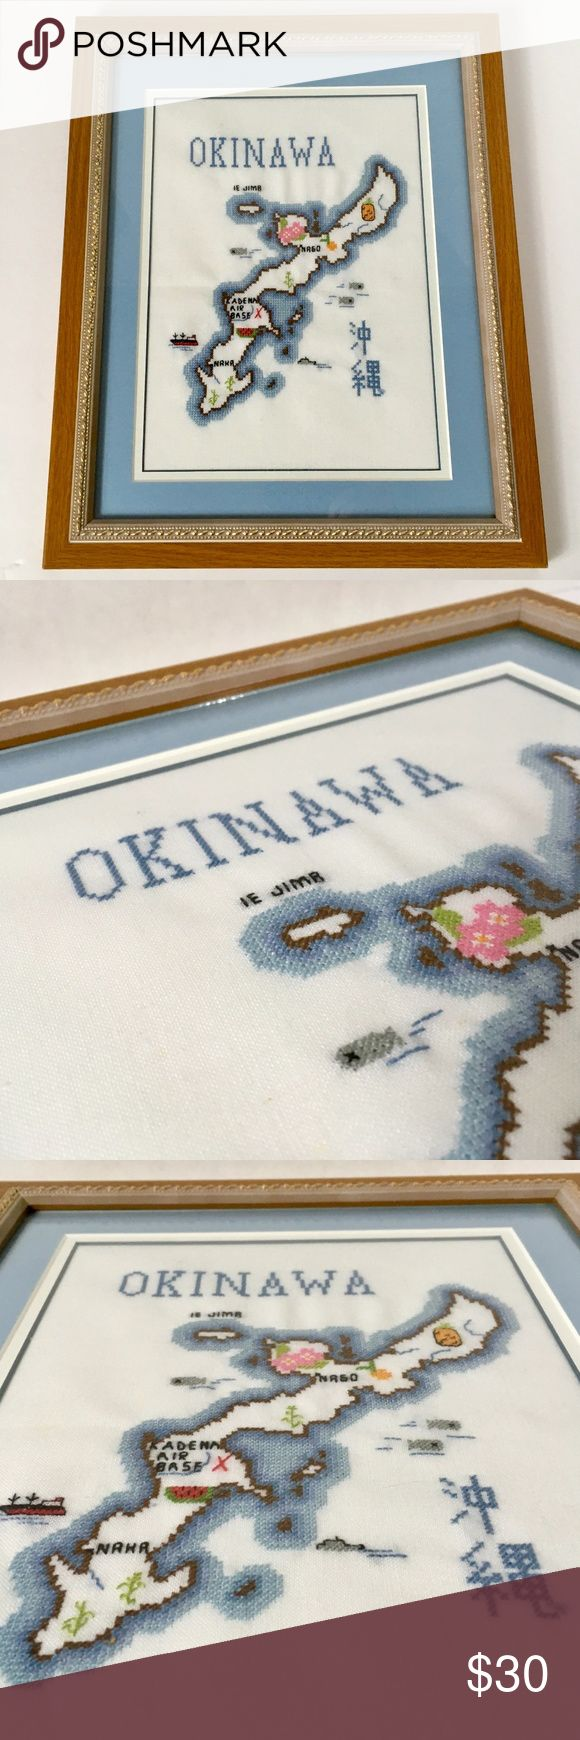 Okinawa Japan Framed Cross Stitch This pre-owned f…